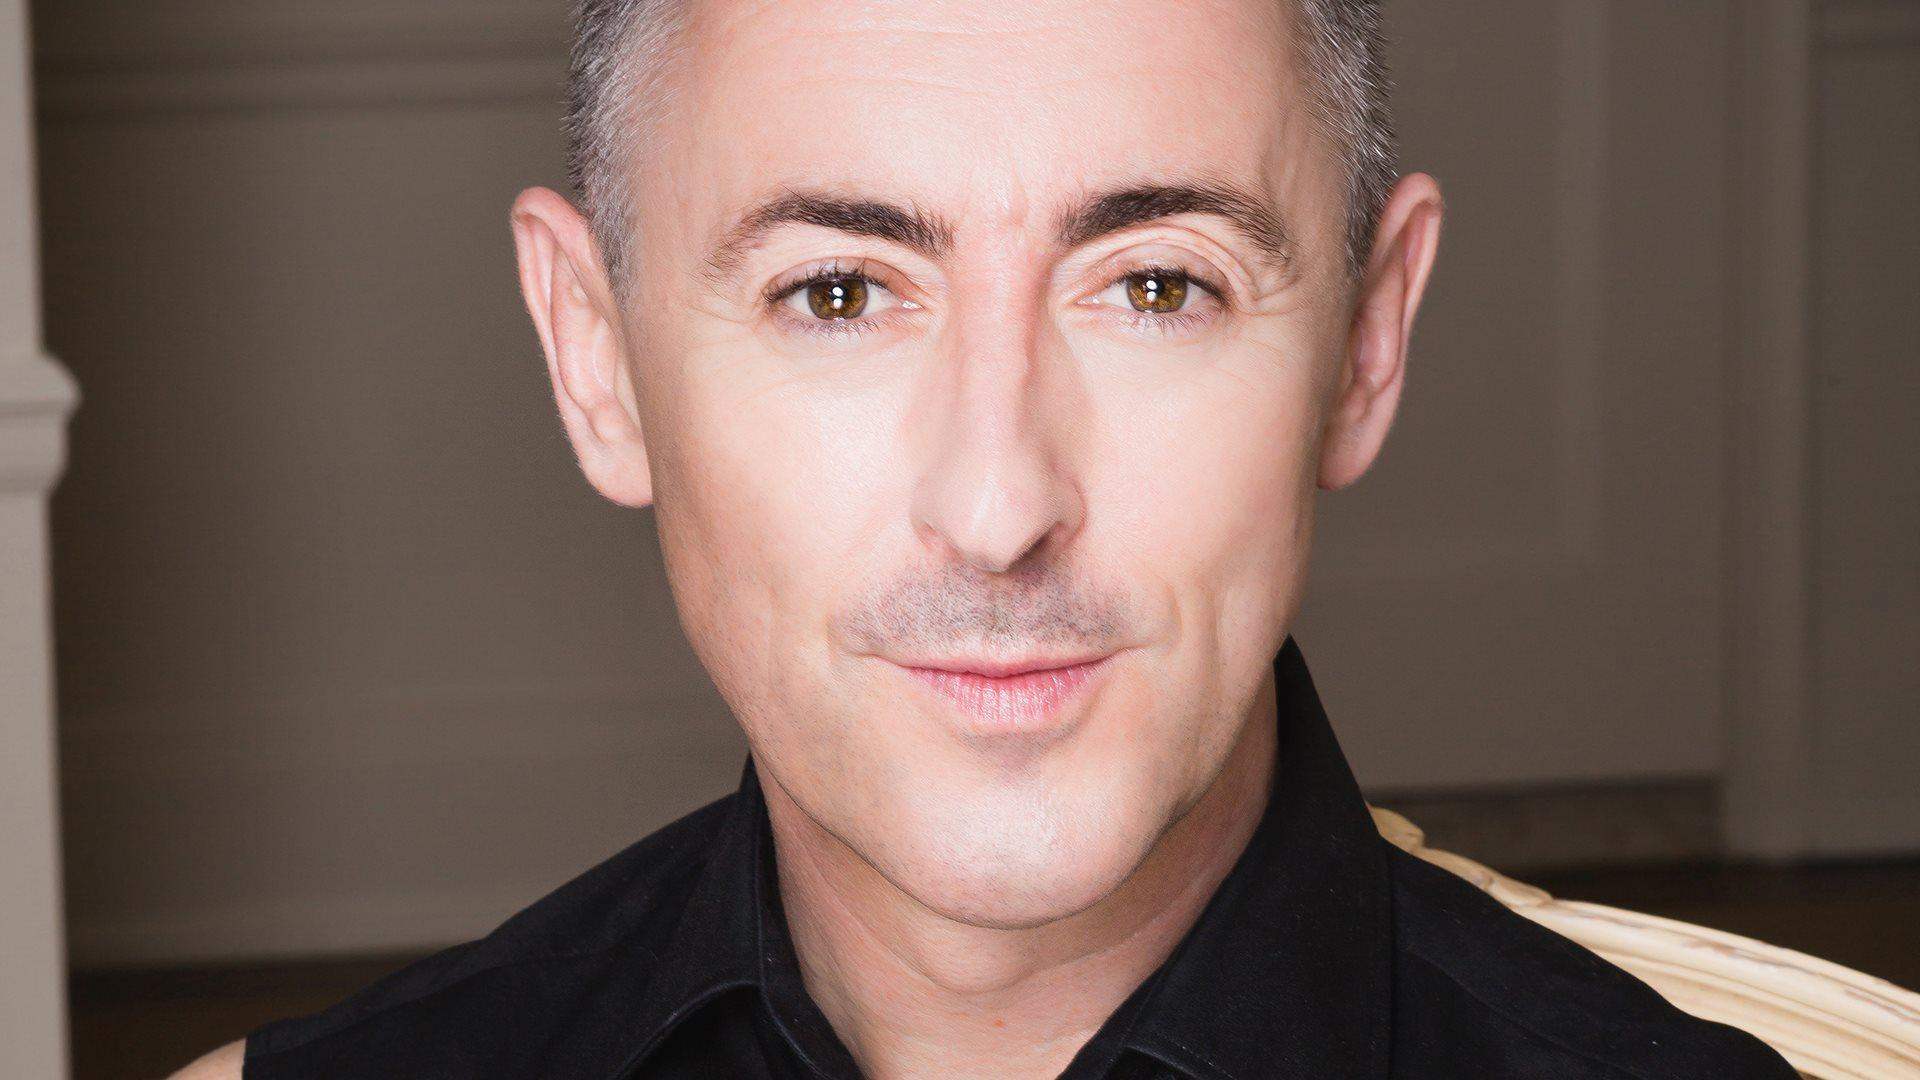 """Actor Alan Cumming is selling his album, """"Alan Cumming Sings Sappy Songs: Live at Café Carlyle"""", on his North America cabaret show tour."""